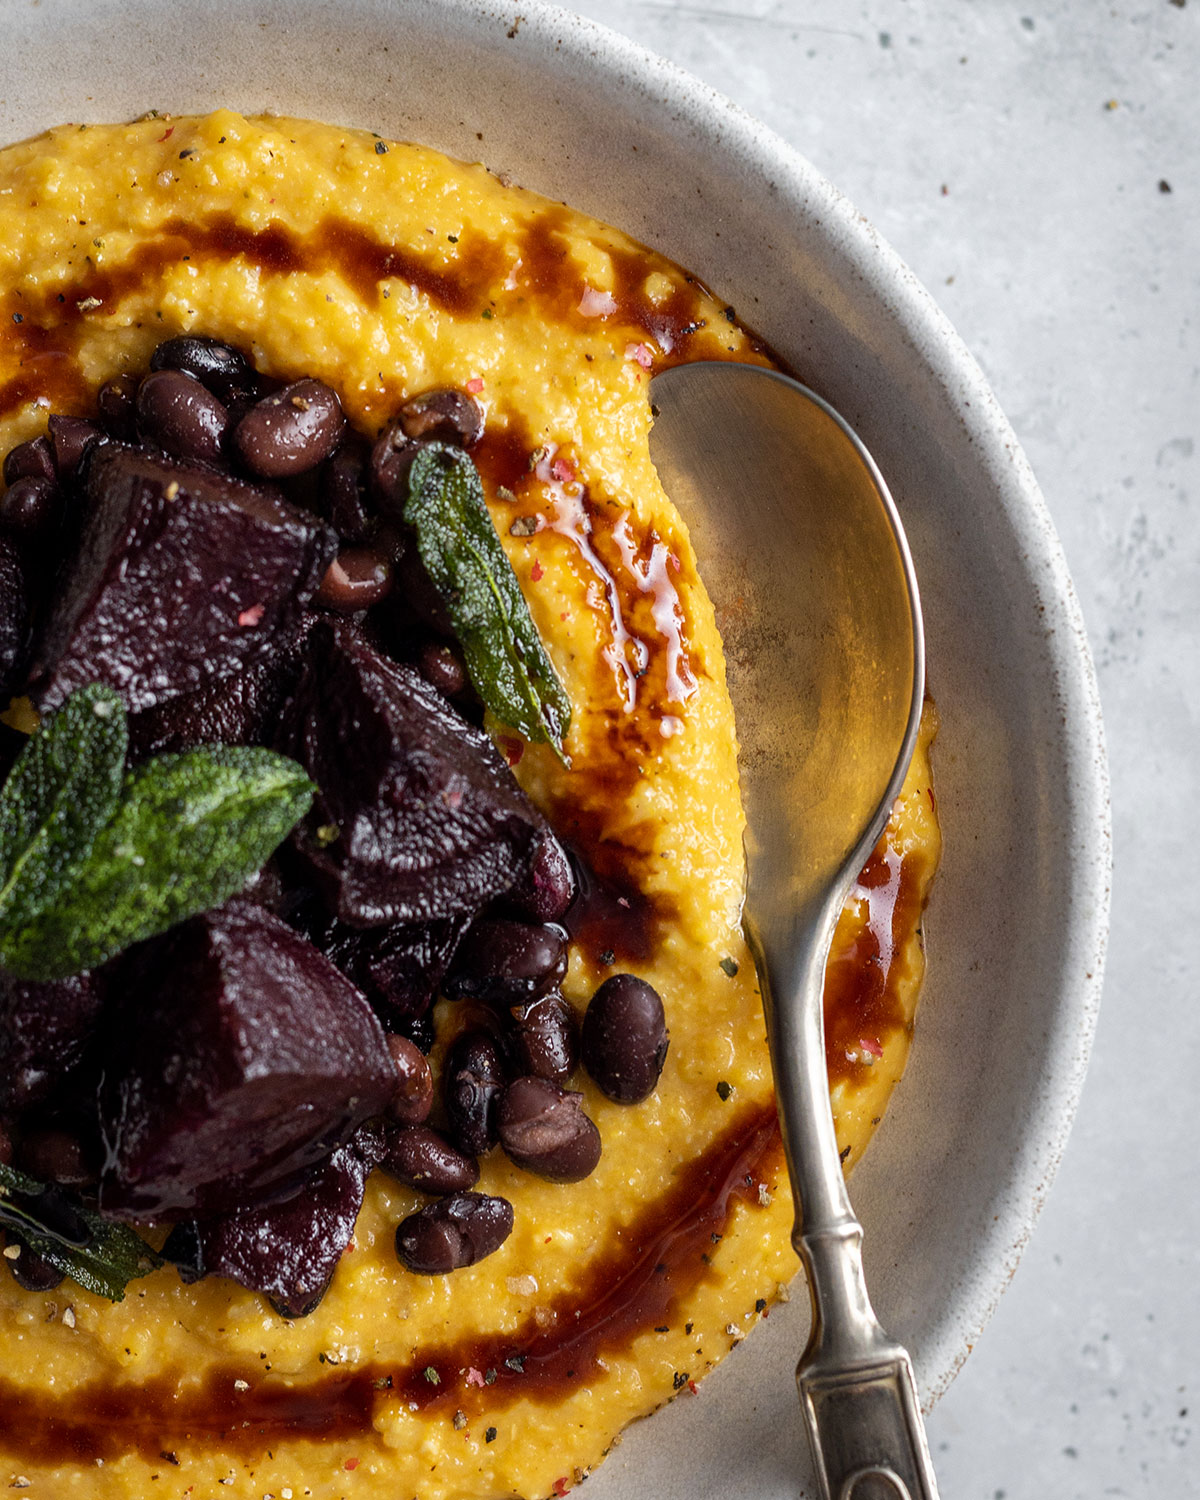 A white bowl with a spoon filled with yellow creamy pumpkin polenta made to a vegan recipe. The pumpkin polenta is topped with roasted beetroot black beans and a balsamic drizzle as well as crispy sage leaves.